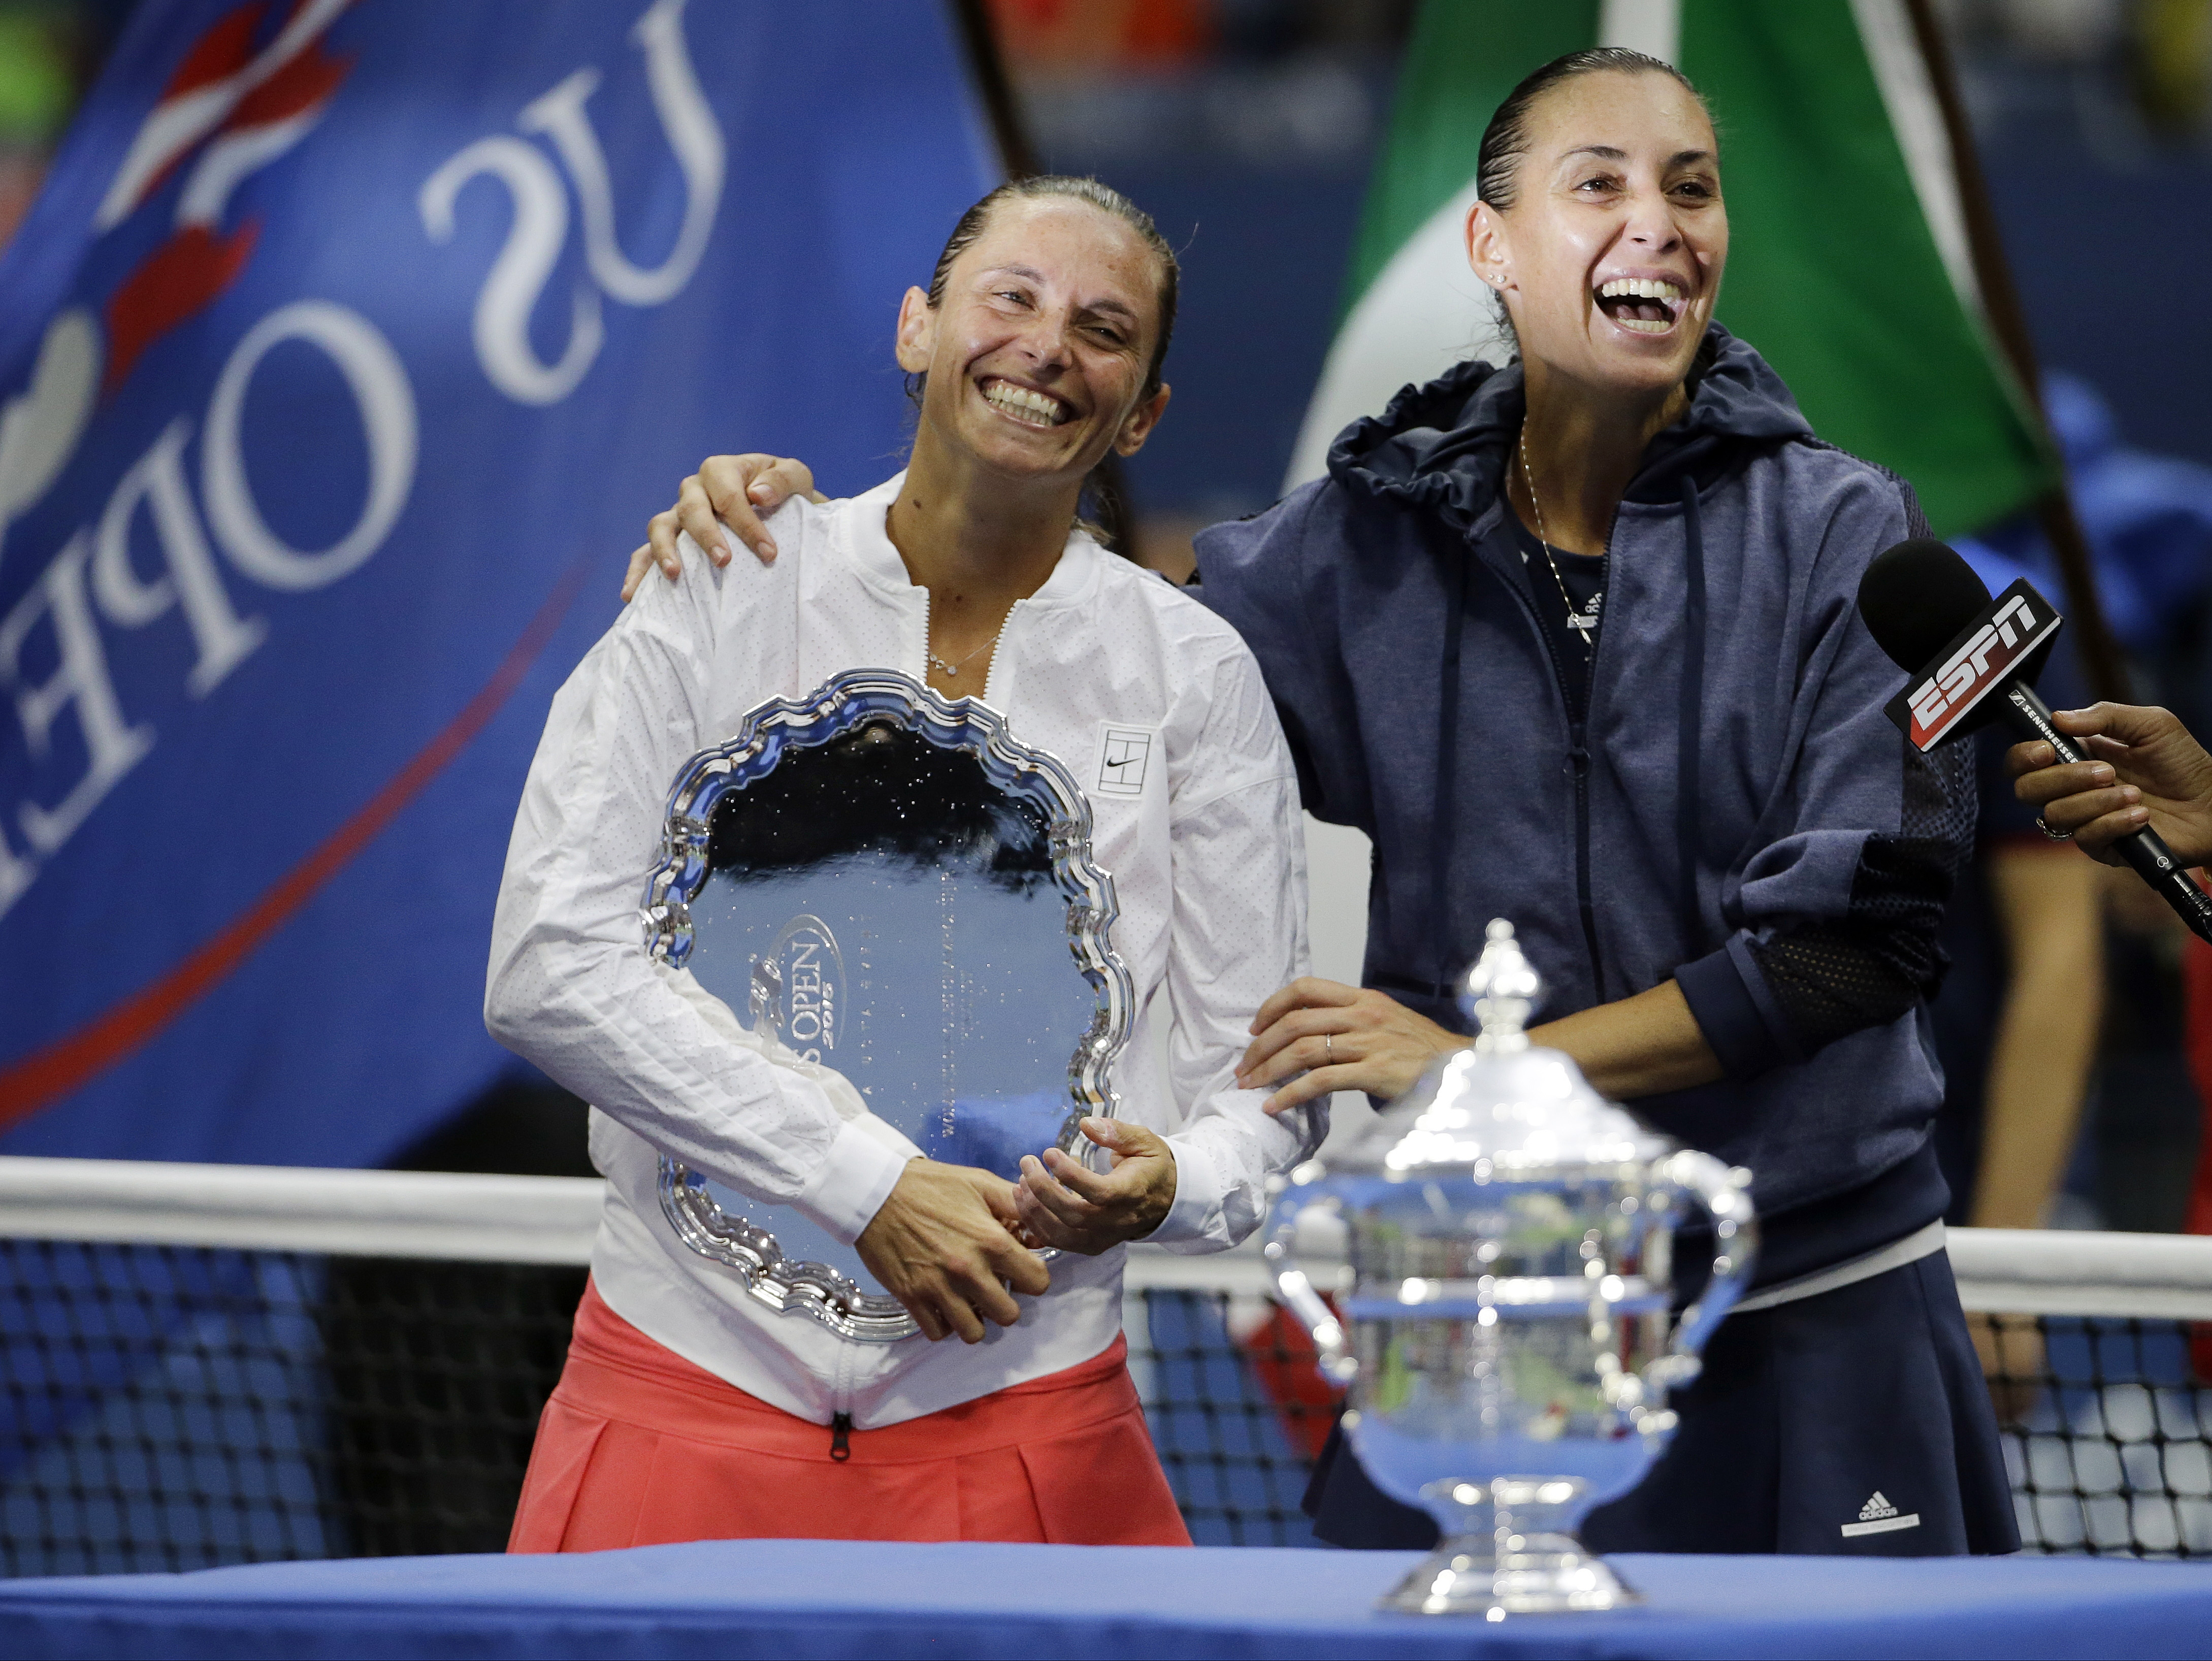 Roberta Vinci, of Italy, left, and Flavia Pennetta, of Italy, react during the trophy ceremony for the women's championship match of the U.S. Open tennis tournament, Saturday, Sept. 12, 2015, in New York. Pennetta beat Vinci in straight sets. (AP Photo/Da